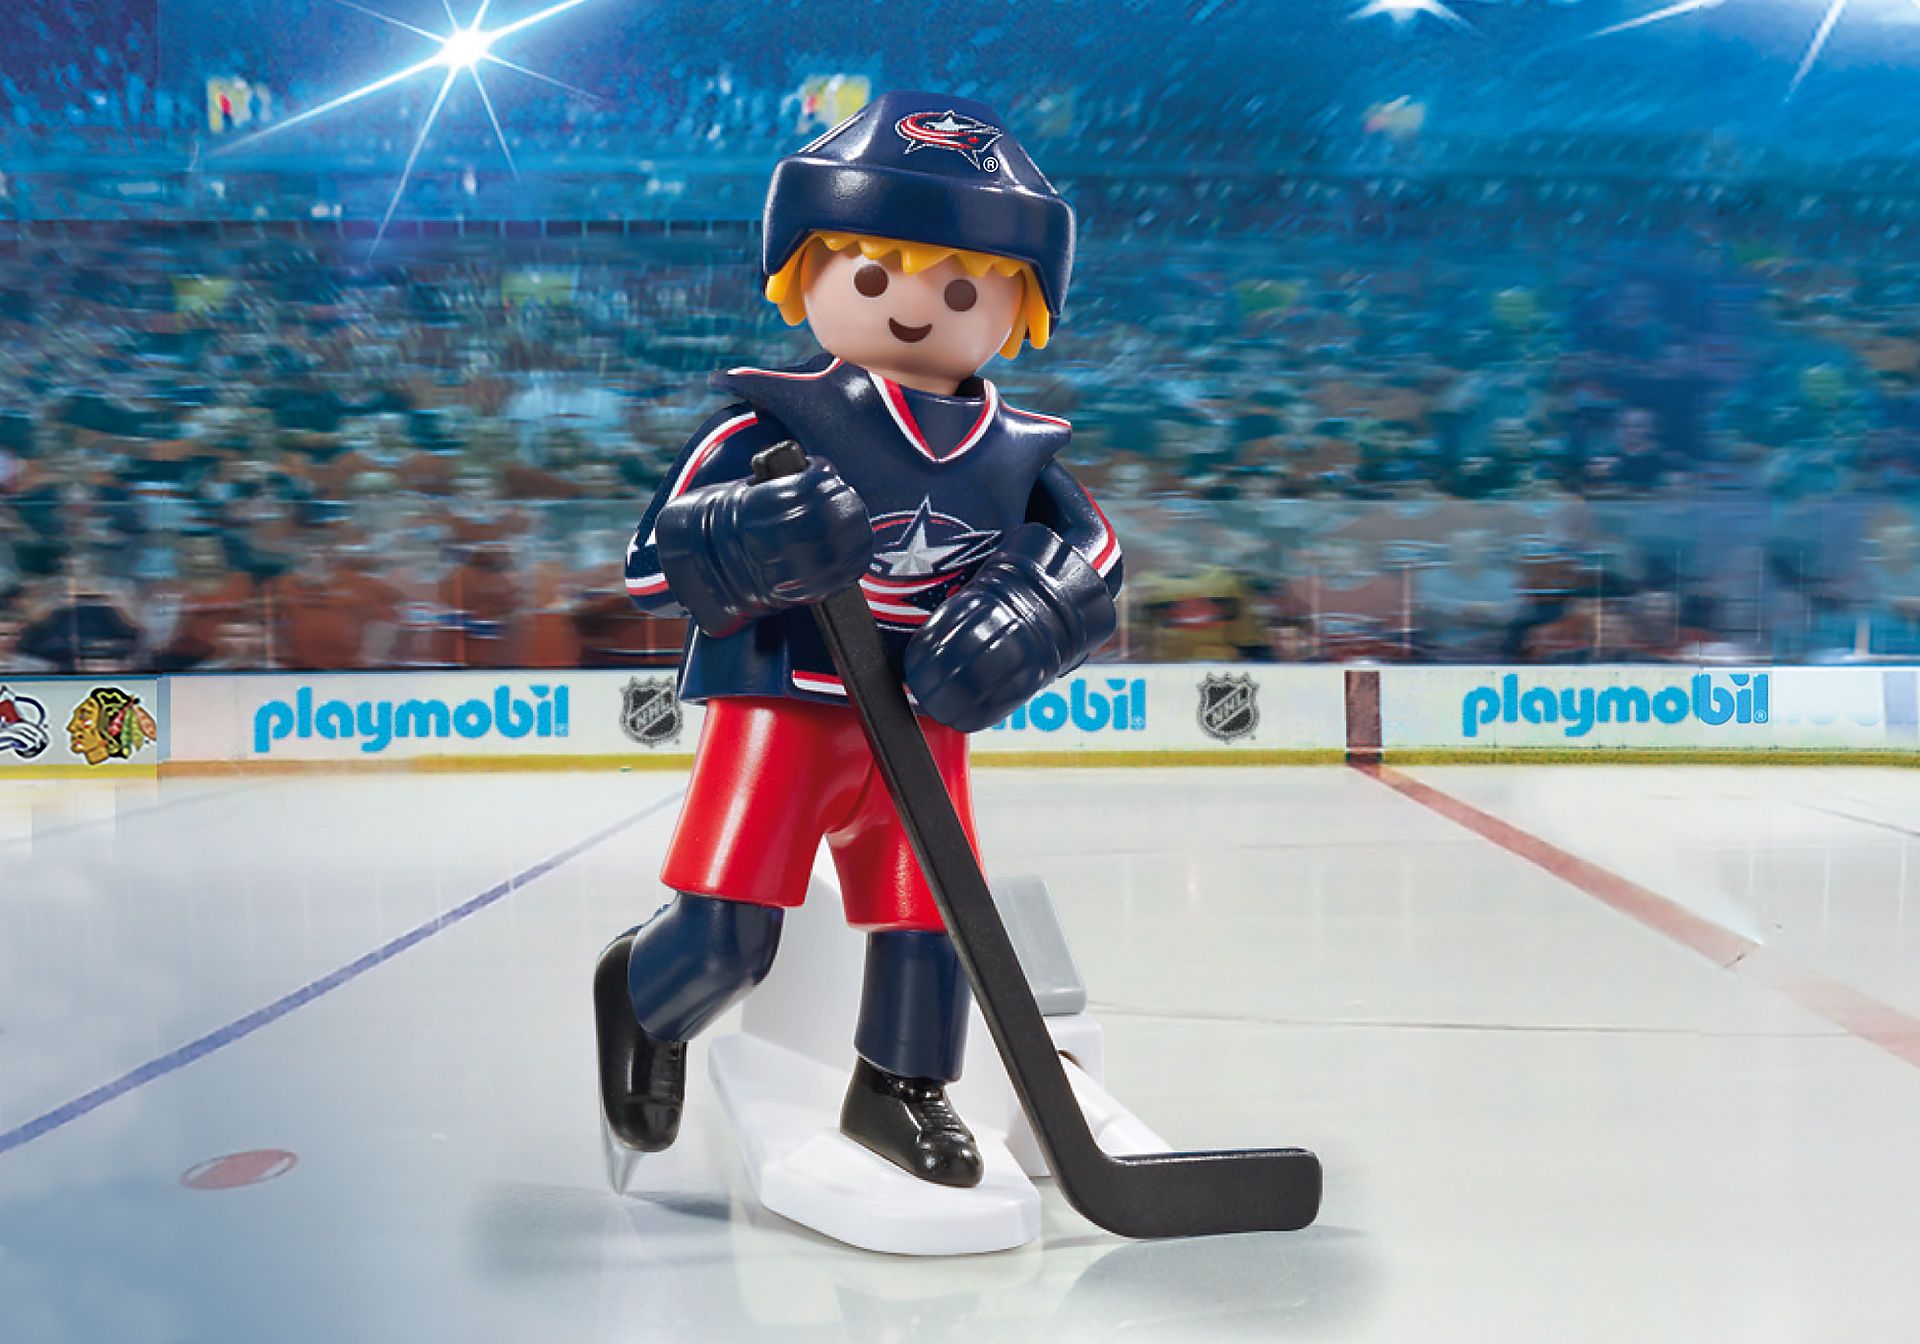 9202 NHL™ Columbus Blue Jackets™ Player zoom image1